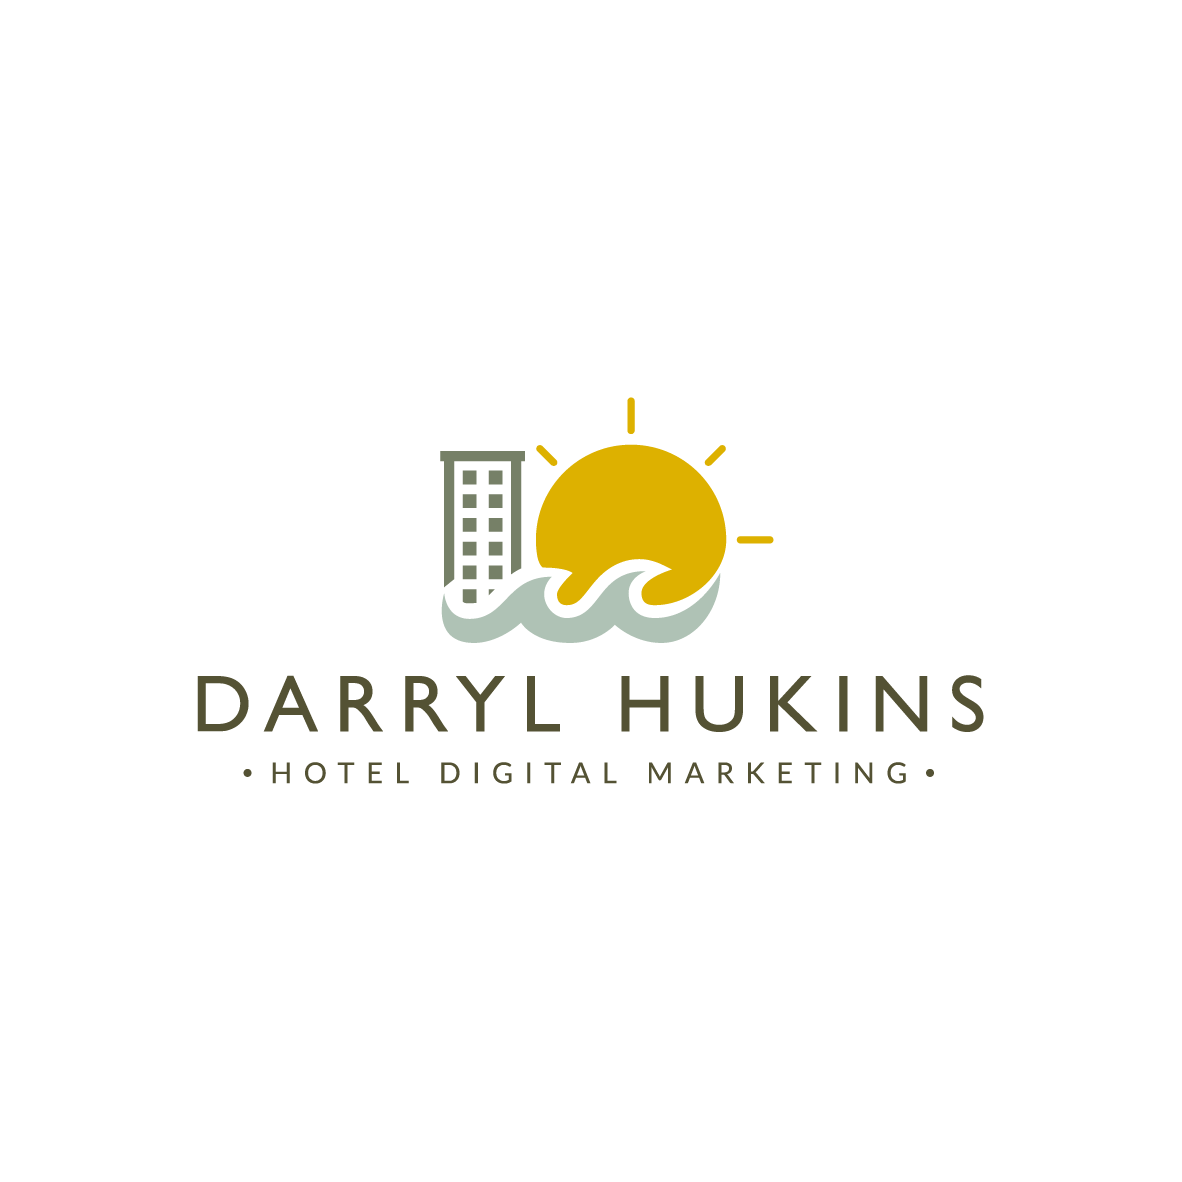 Logo Design for hotel digital marketing consultant - Darryl Hukins. - Based on the Sunshine Coast, Darryl needed a clean, contemporary logo that had a tropical flavour to be utilized in the Australian and Asian market.